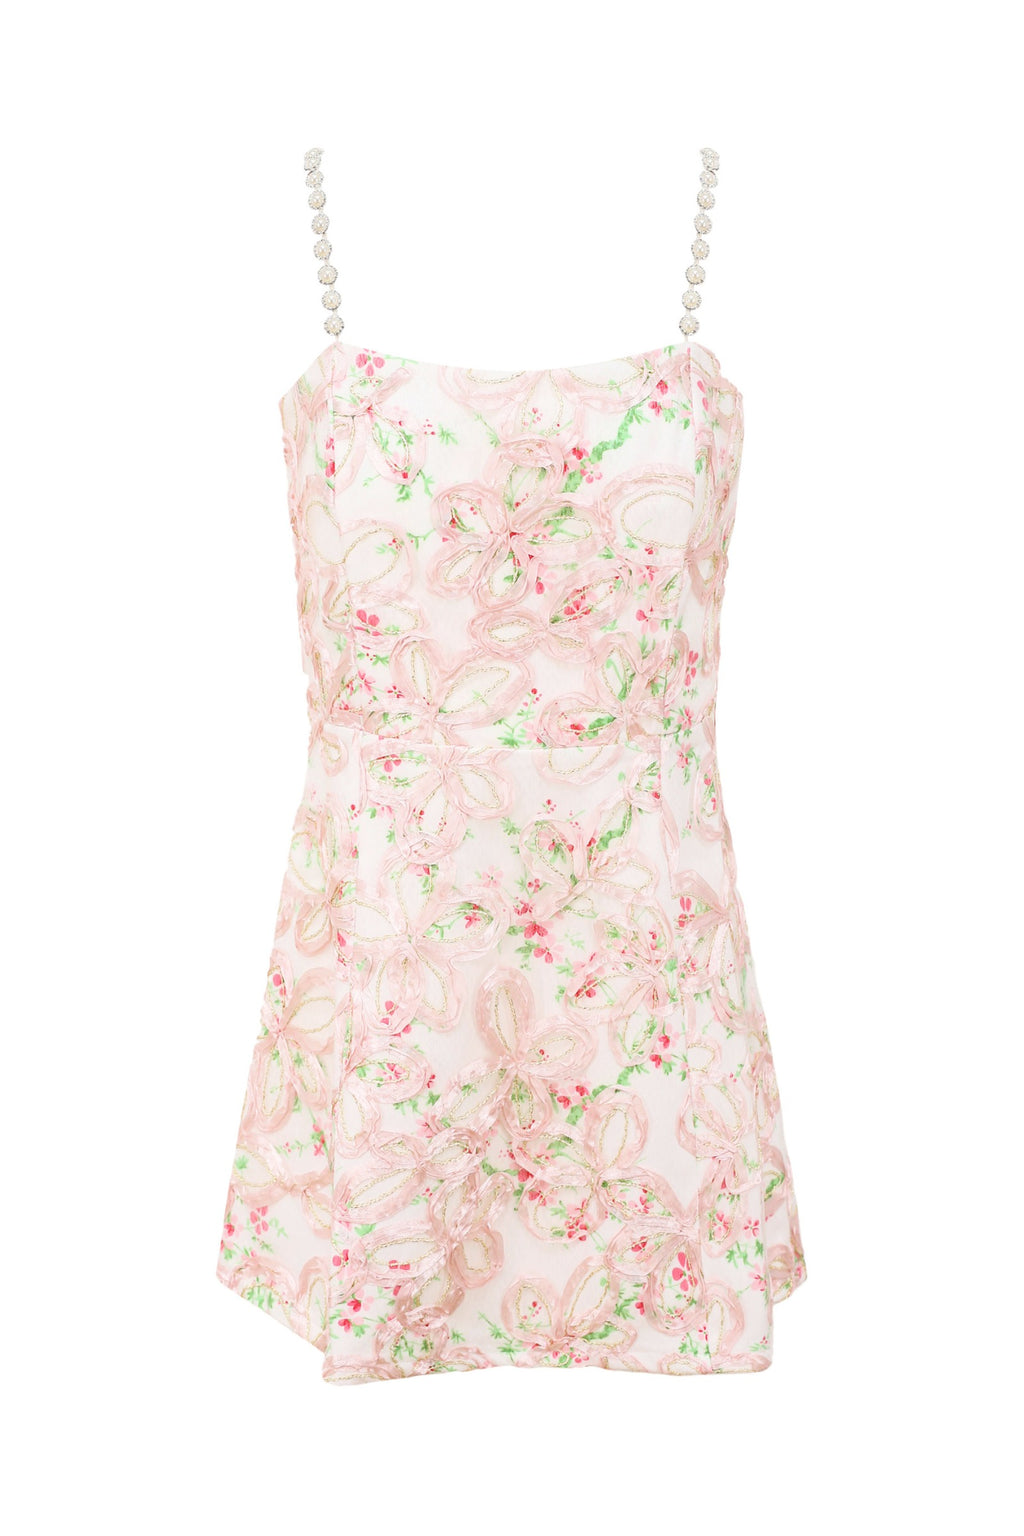 Pink Cherry Blossom Dress